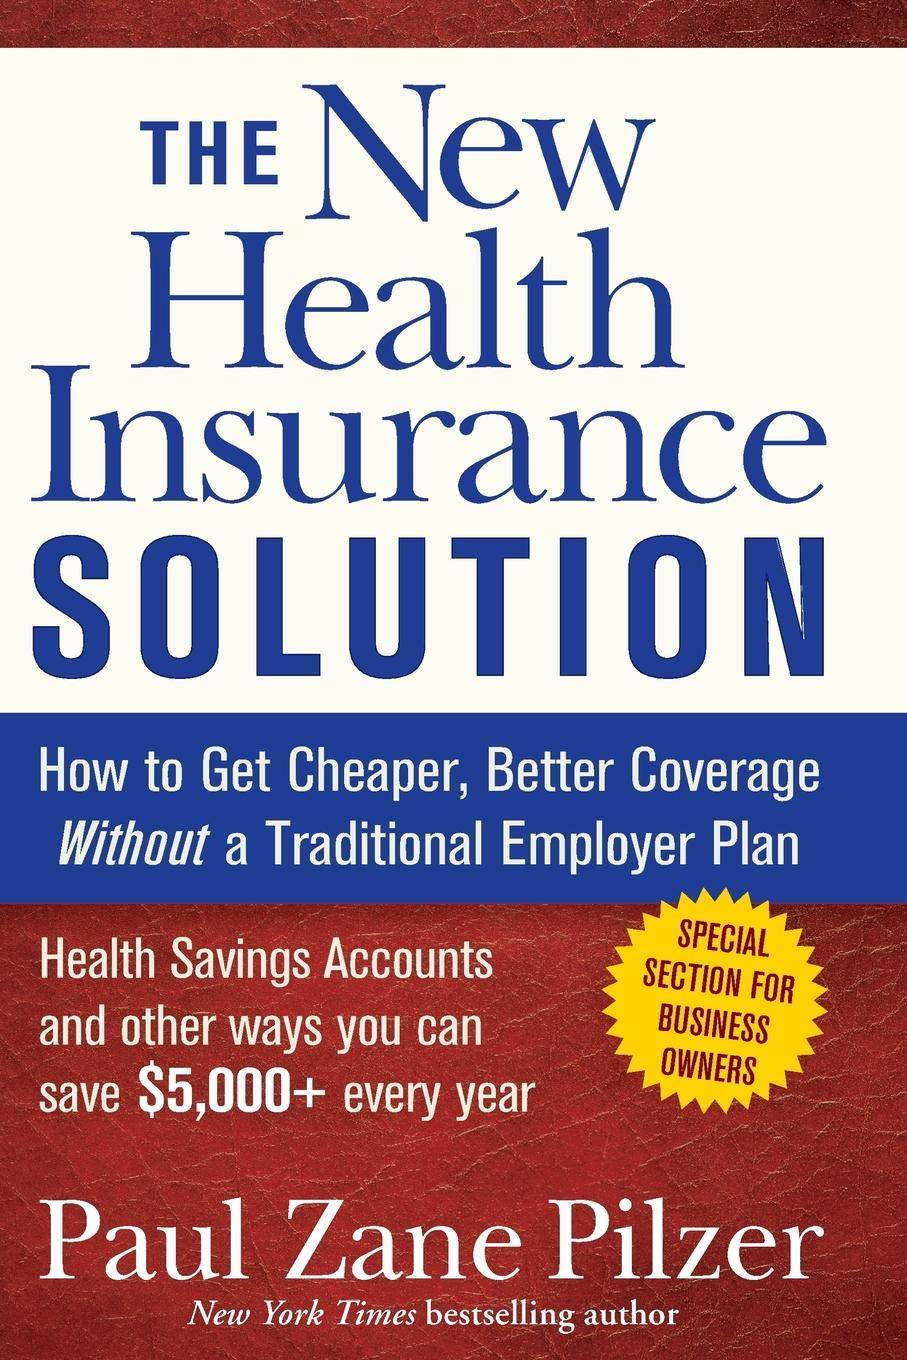 The New Health Insurance Solution: How to Get Cheaper